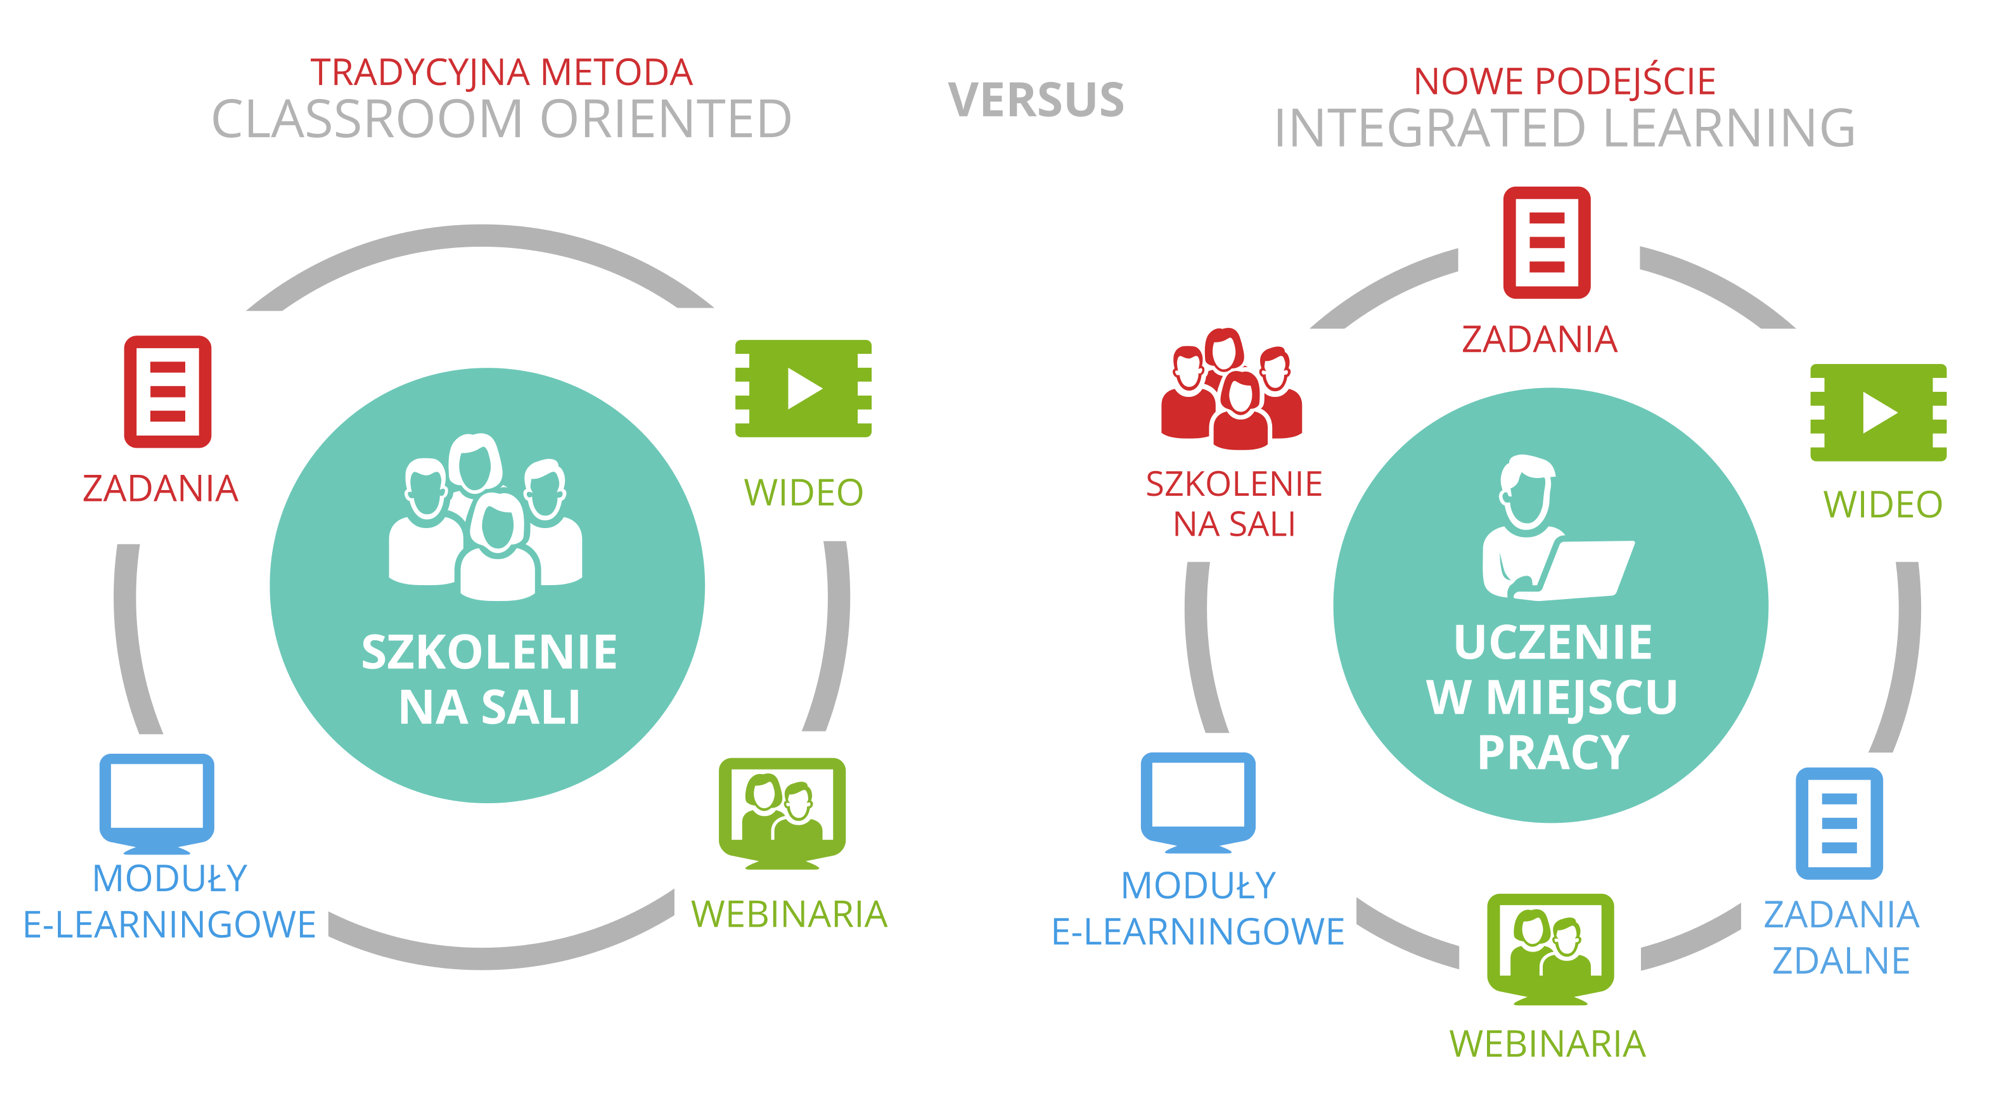 Clasroom vs Integrated Learning